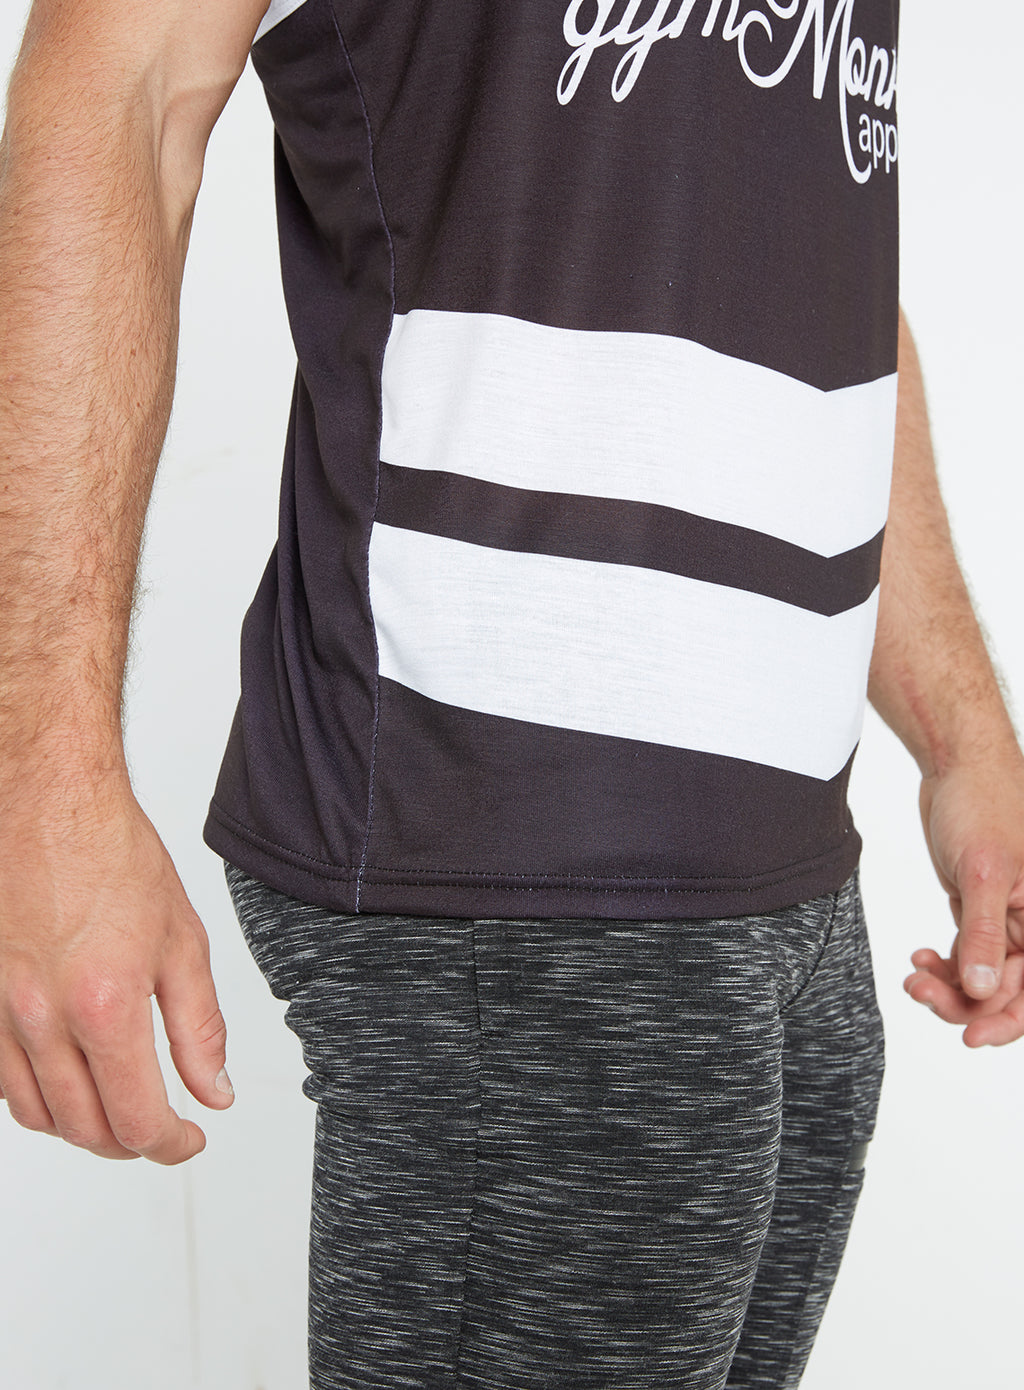 Gym Monkee -  Black and White Sublimated Vest CLOSEUP